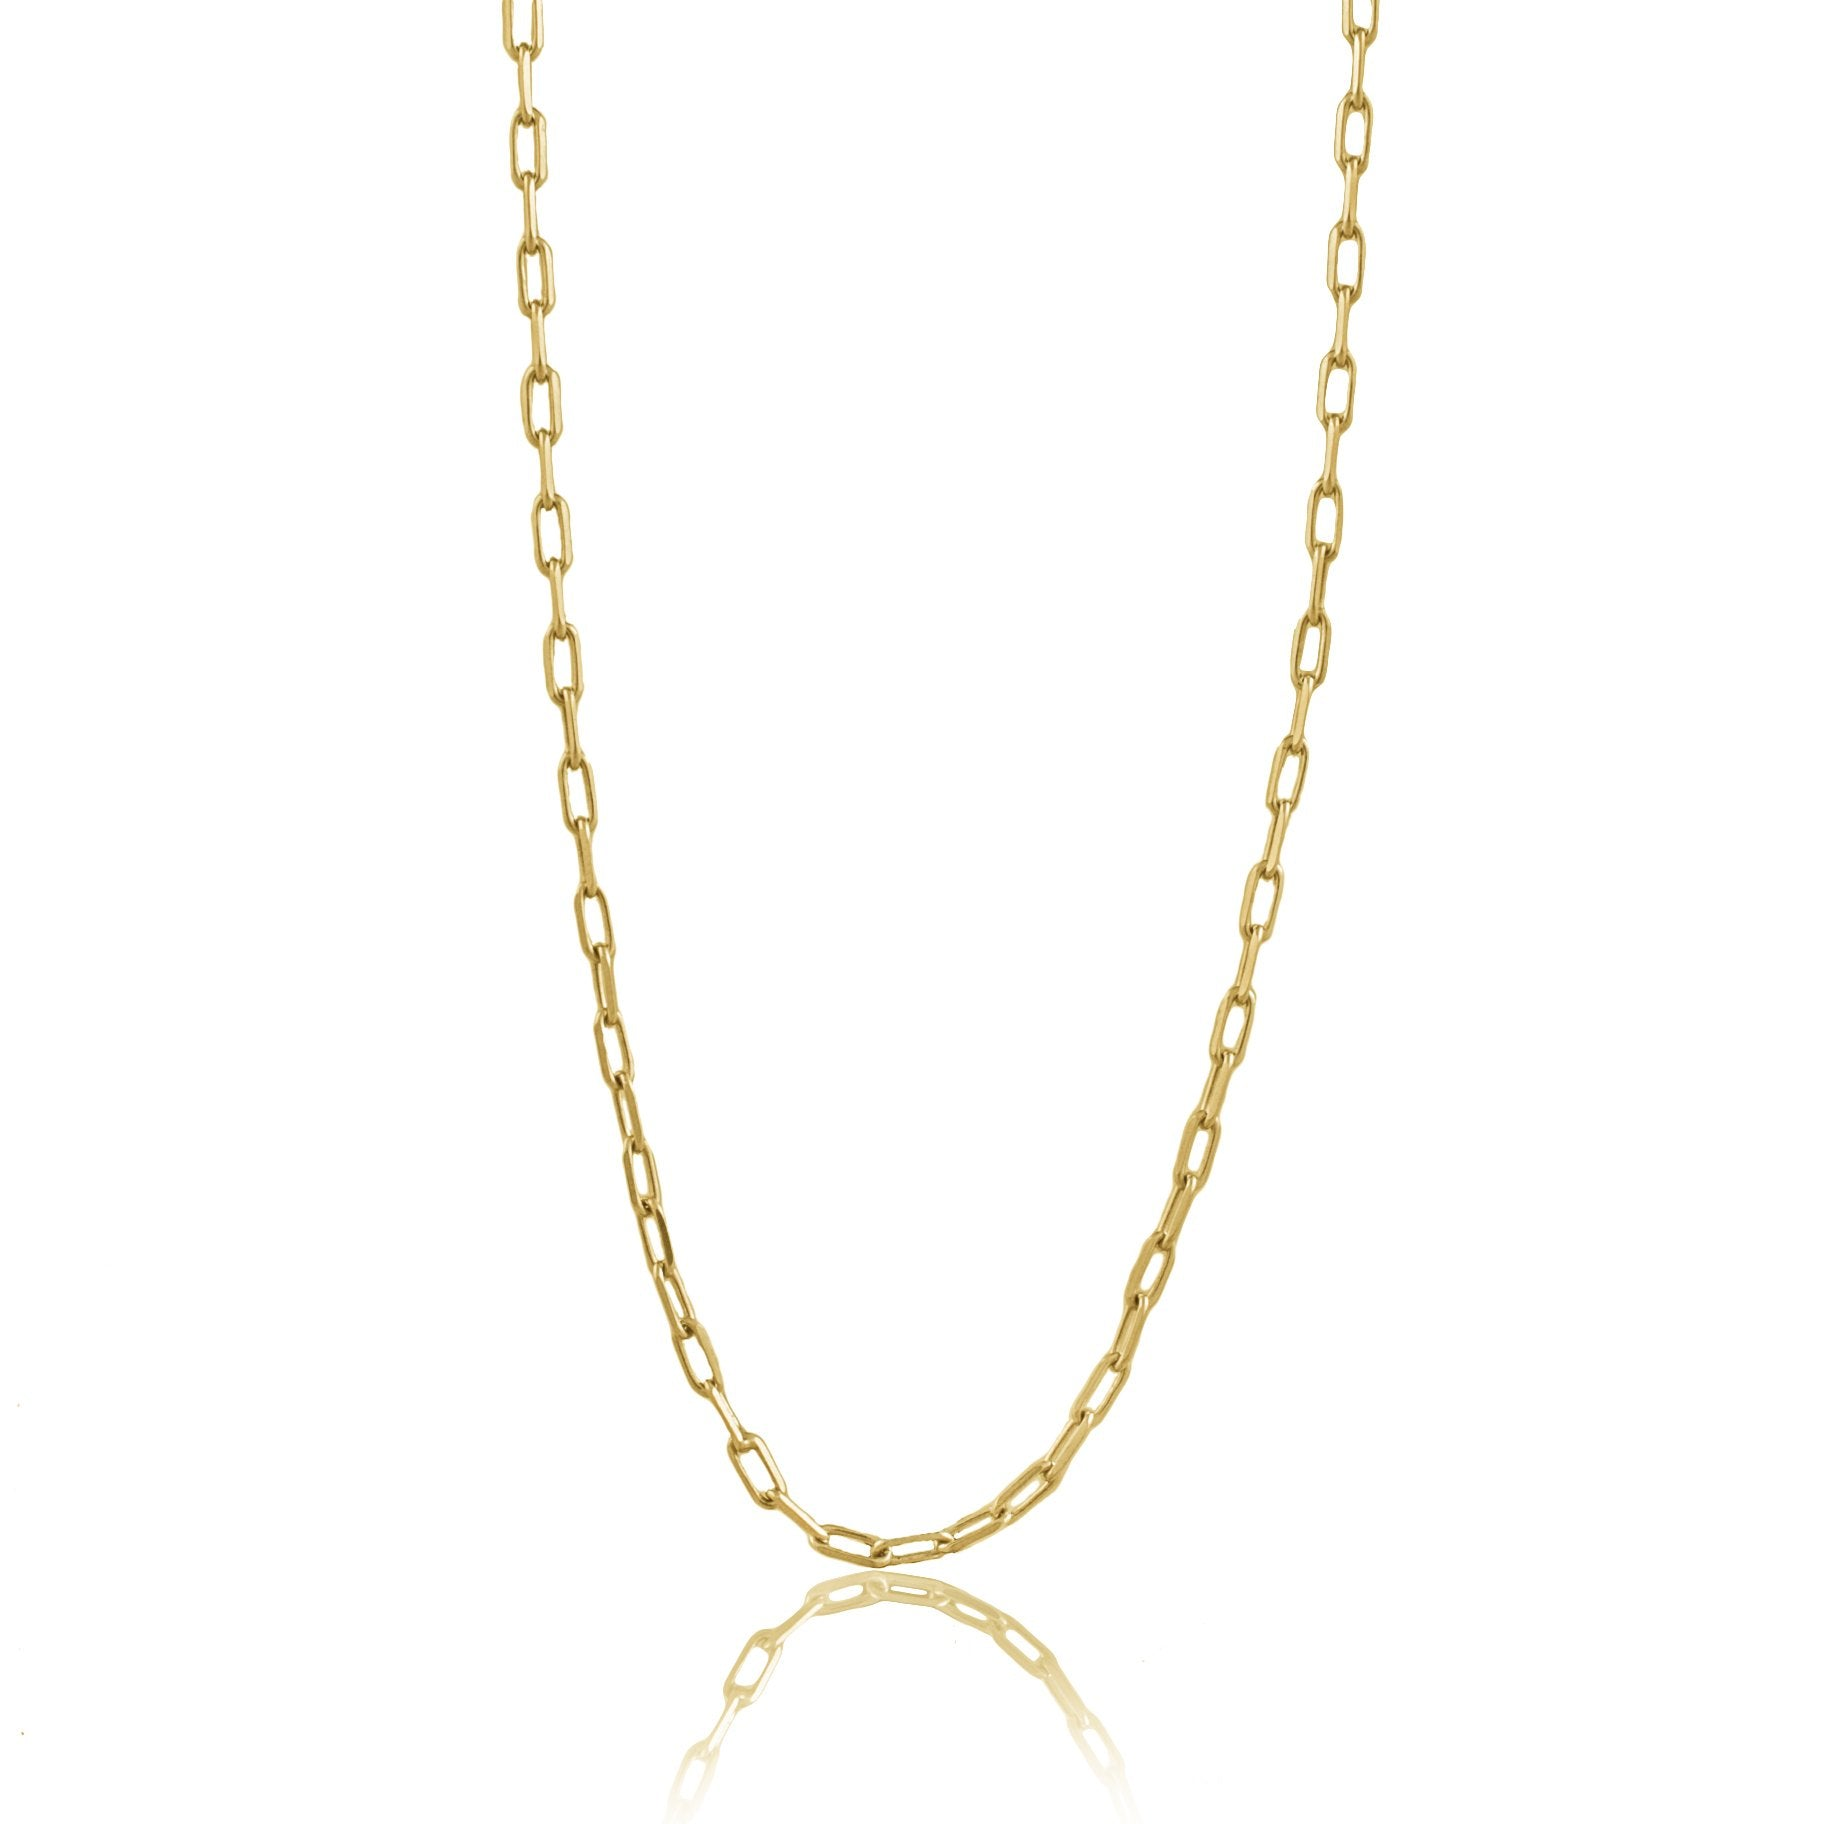 Luna & Rose Long Beach Link Chain - Gold from Recycled Sterling Silver